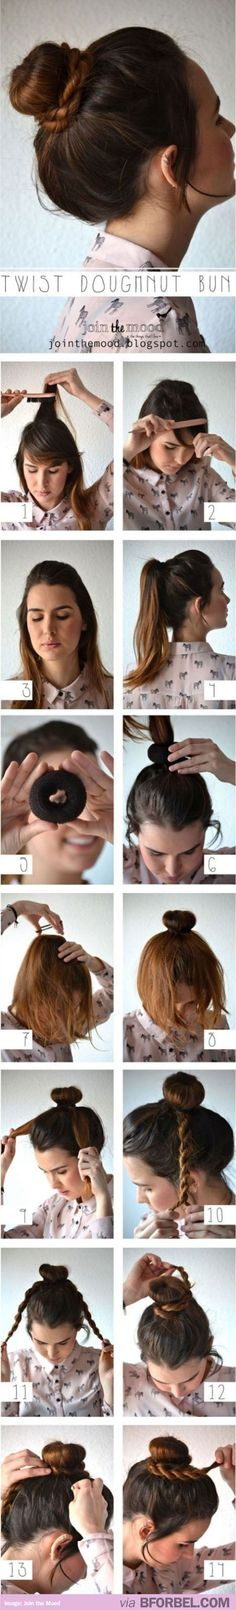 For when you want to add a twist to the donut bun that everyone's doing.